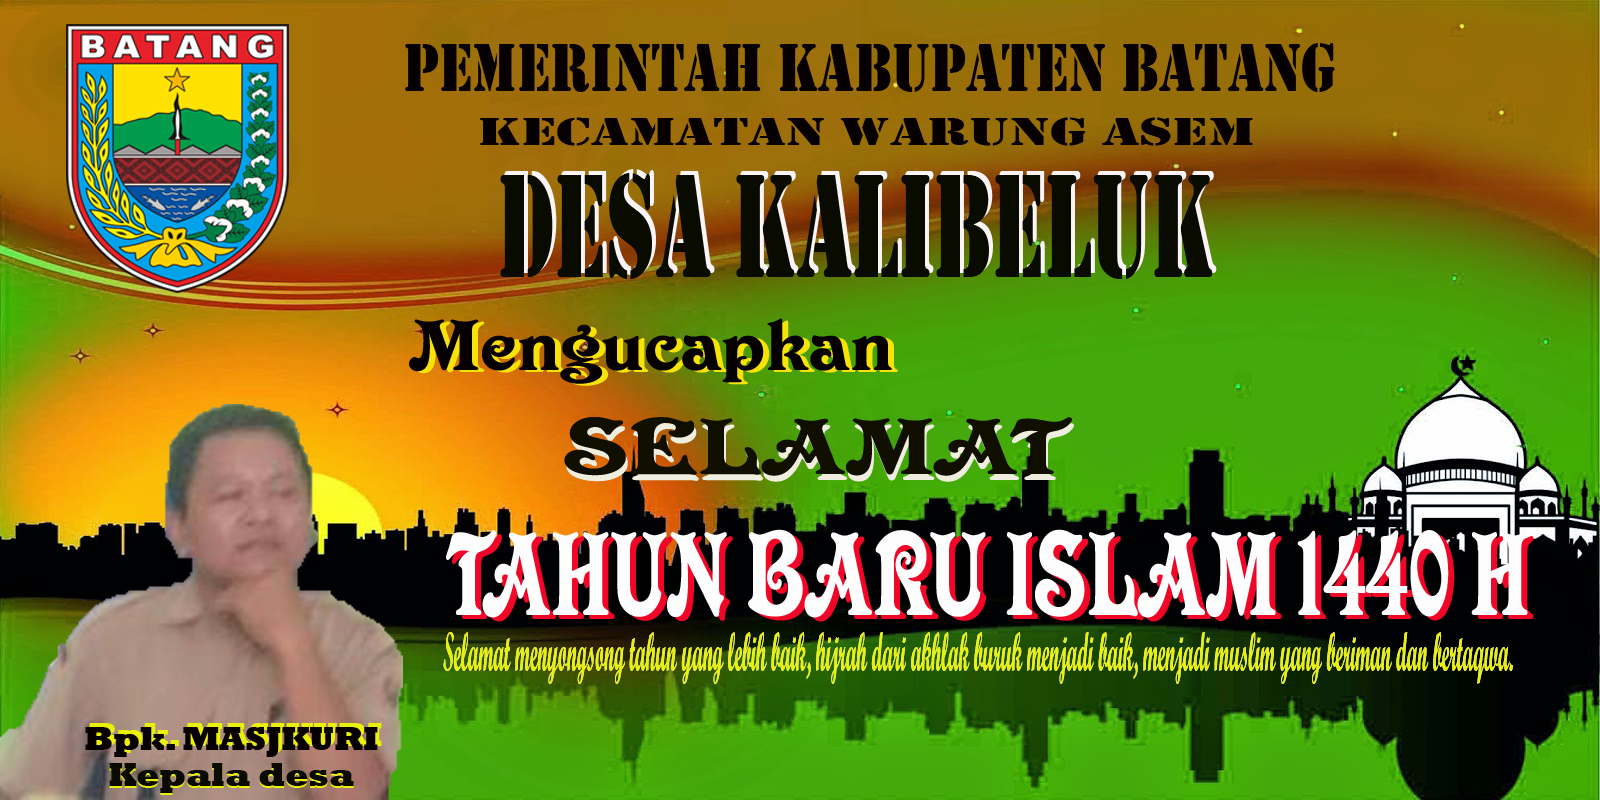 ISLAMIC BACKGROUND EE copy